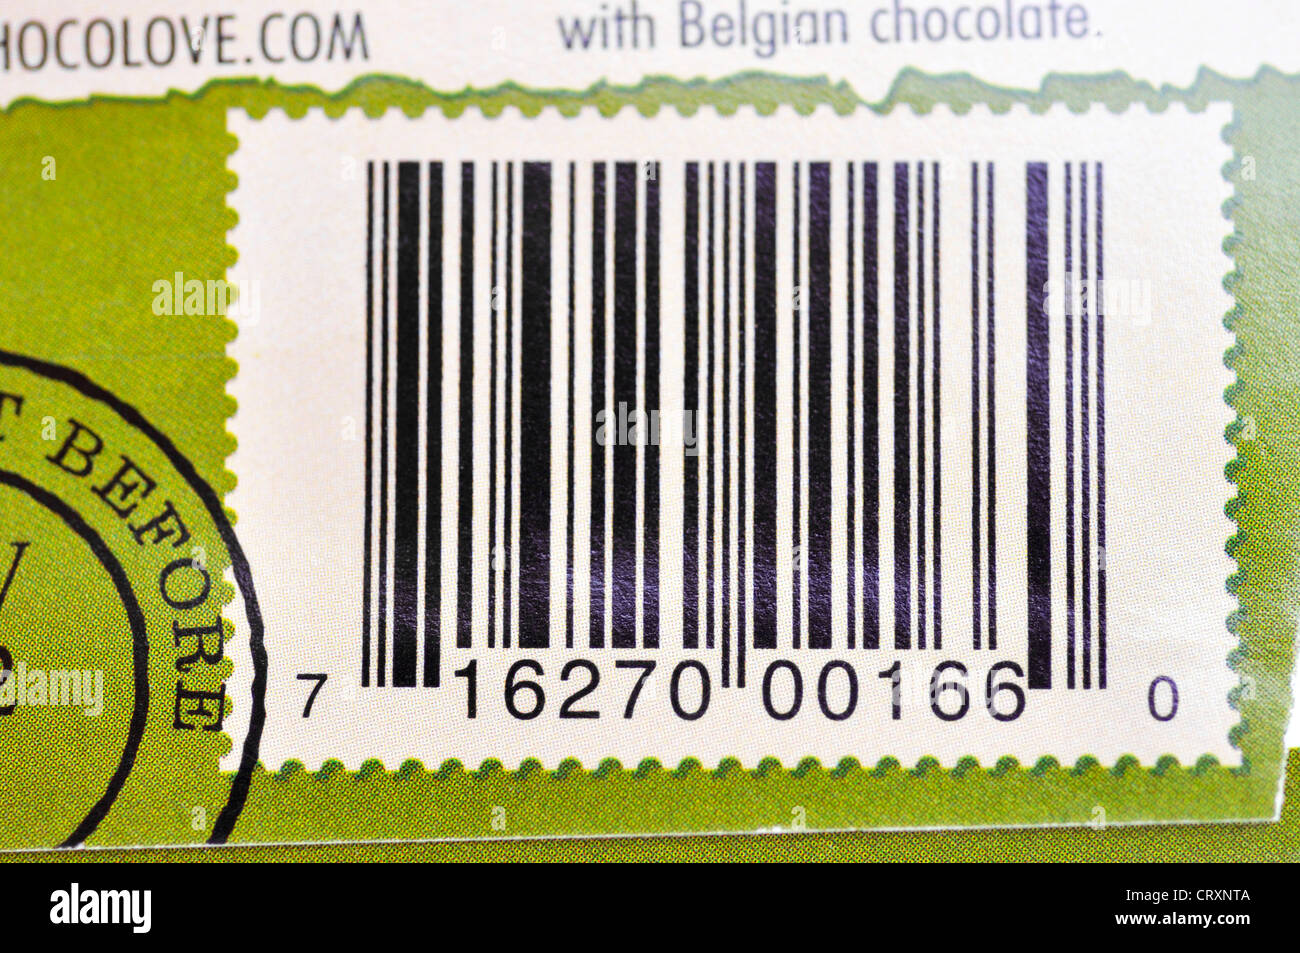 Barcode on food package stock photo royalty free image for Barcode food